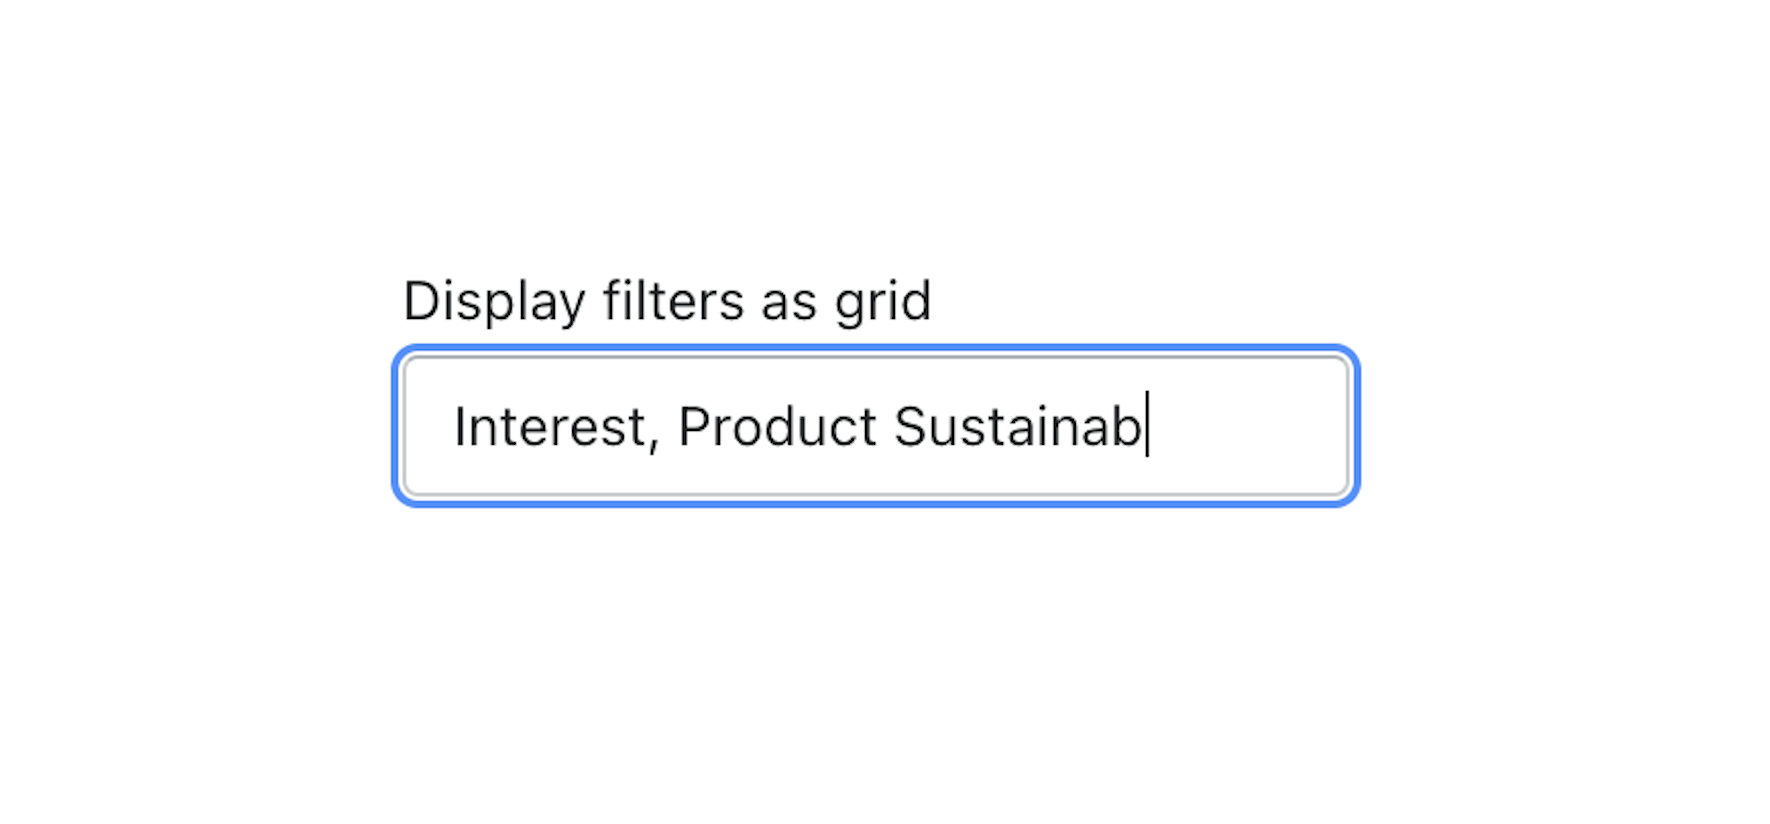 adding_group_tags_to_change_format_to_grid_layout.png